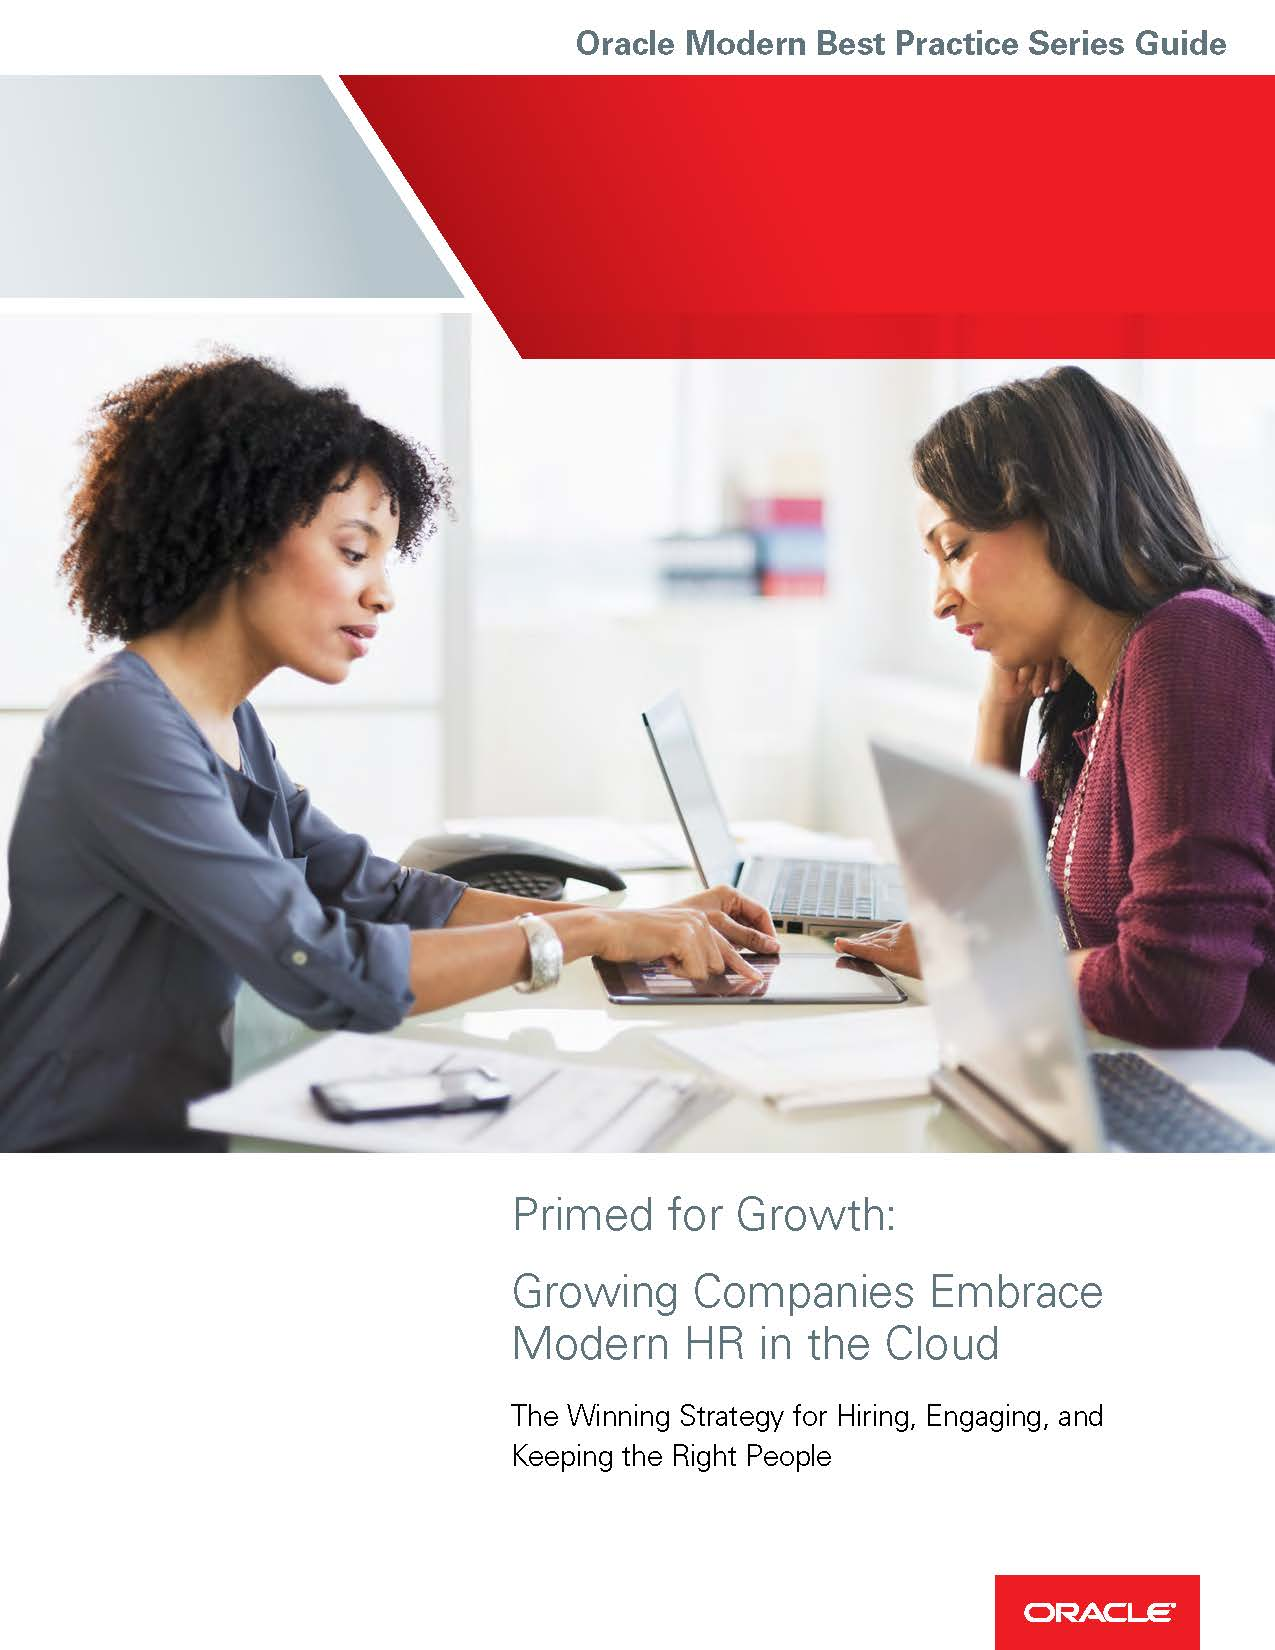 Growing Companies Embrace Modern HR in the Cloud